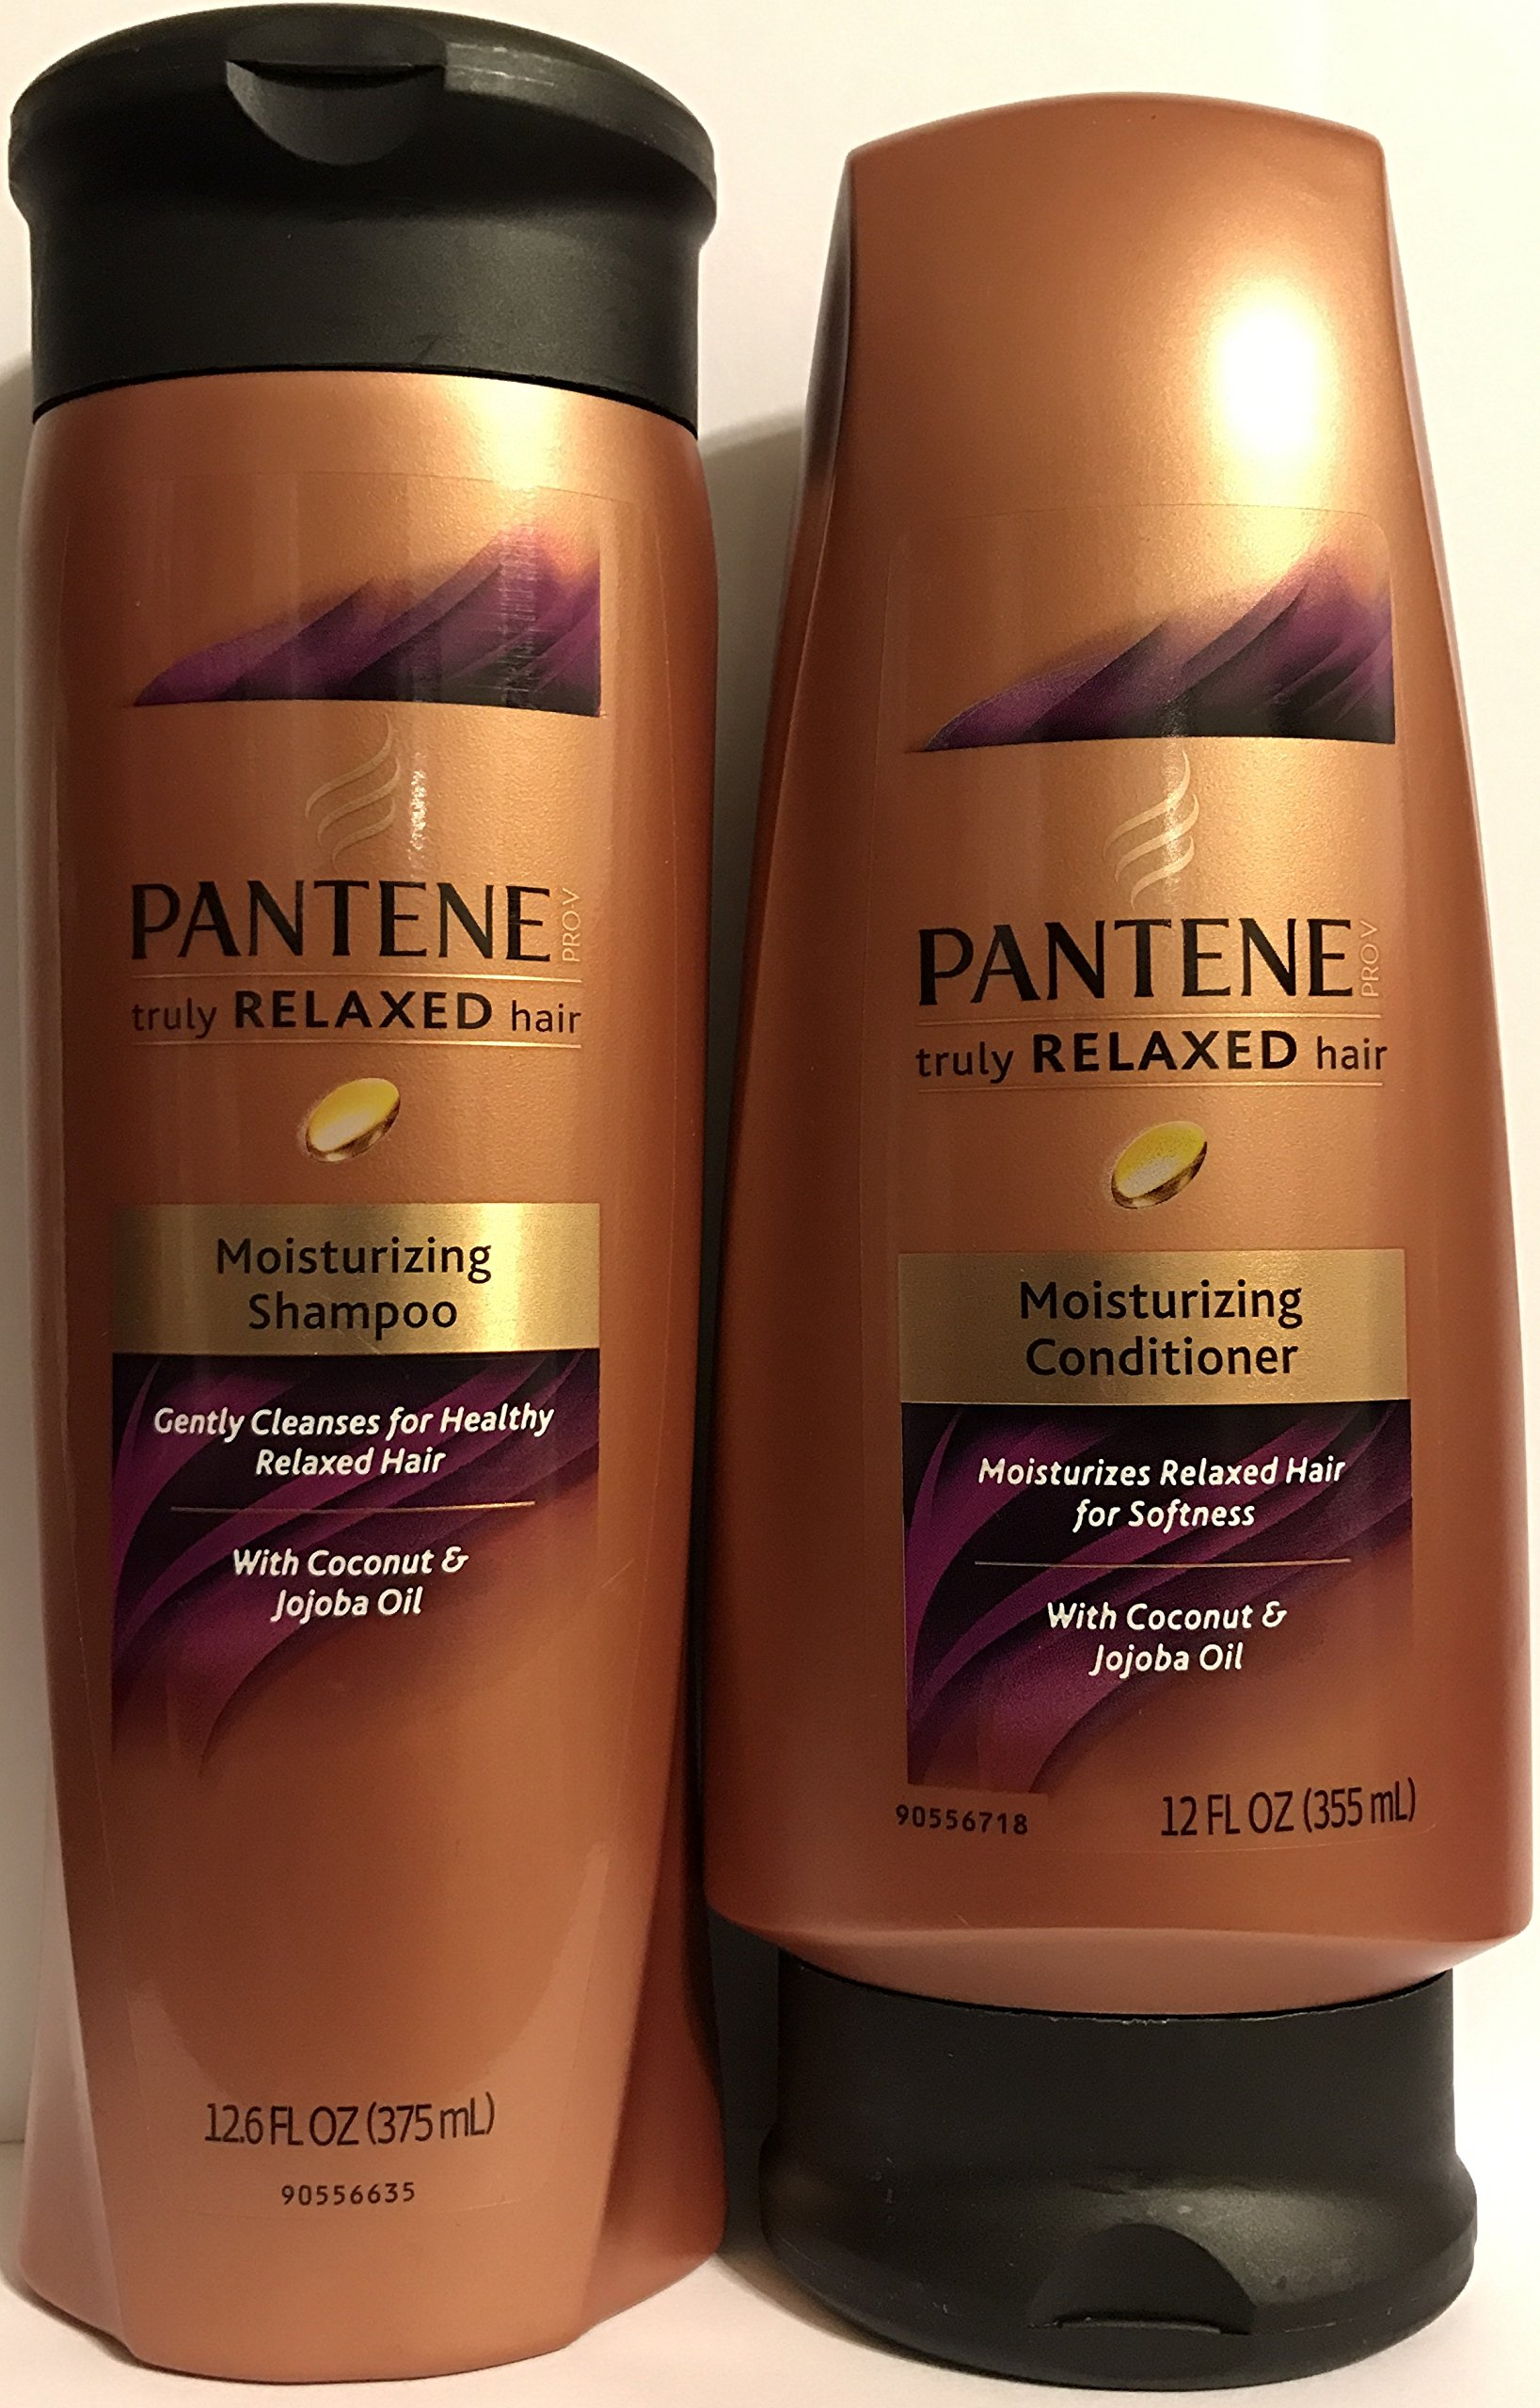 Pantene Truly Relaxed Hair - Moisturizing Shampoo & Conditioner Set - Net Wt. 12.6 FL OZ (Shampoo) & Net Wt. 12 FL OZ (Conditioner) - One Set